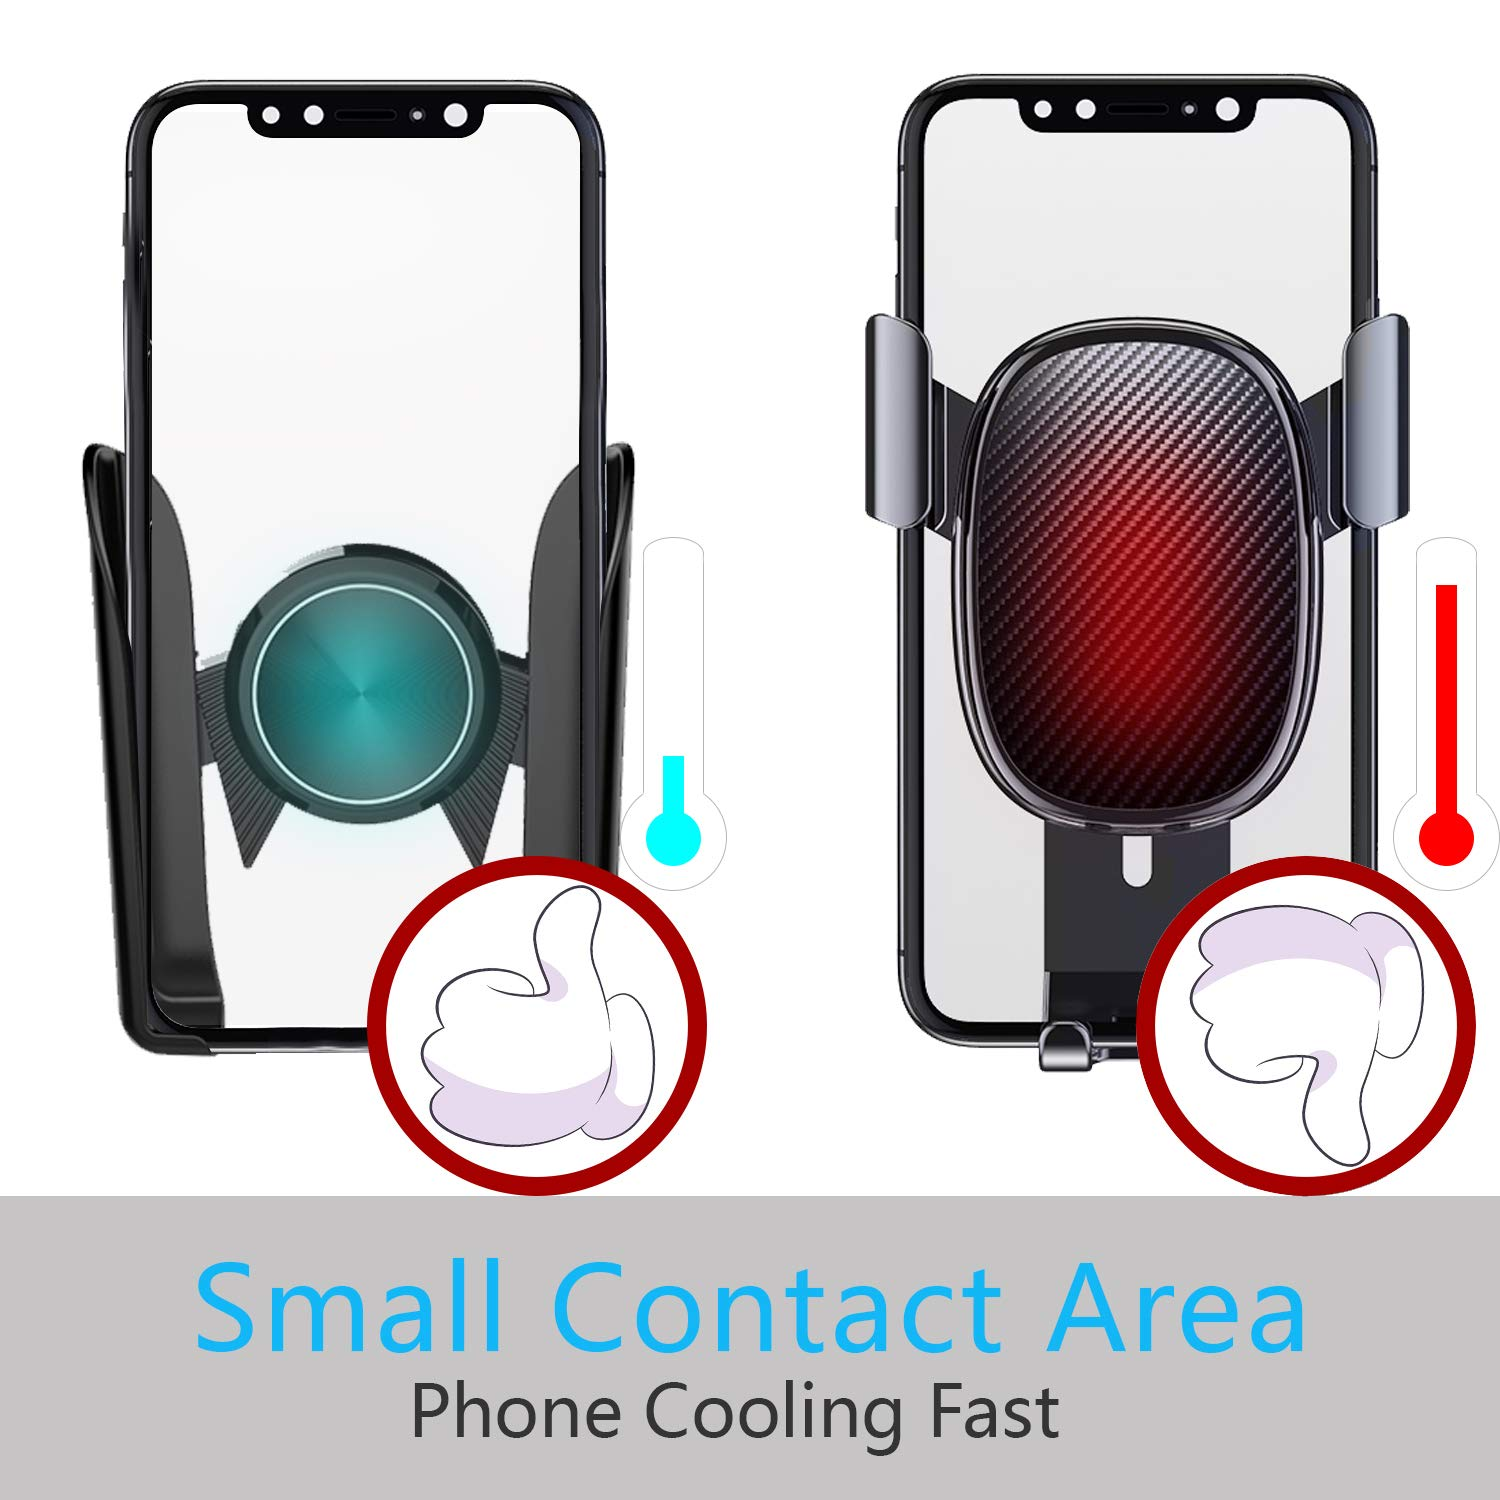 Stable Car Phone Mount Handsfree Car Air Vent Clip Mount Cell Phone Holder Dashboard Cradle 4 in 1 for Car and Home Compatible with iPhone Xs XR X 7 6S 6 Plus 5S Samsung Galaxy S9 S8 S8 S7 and More